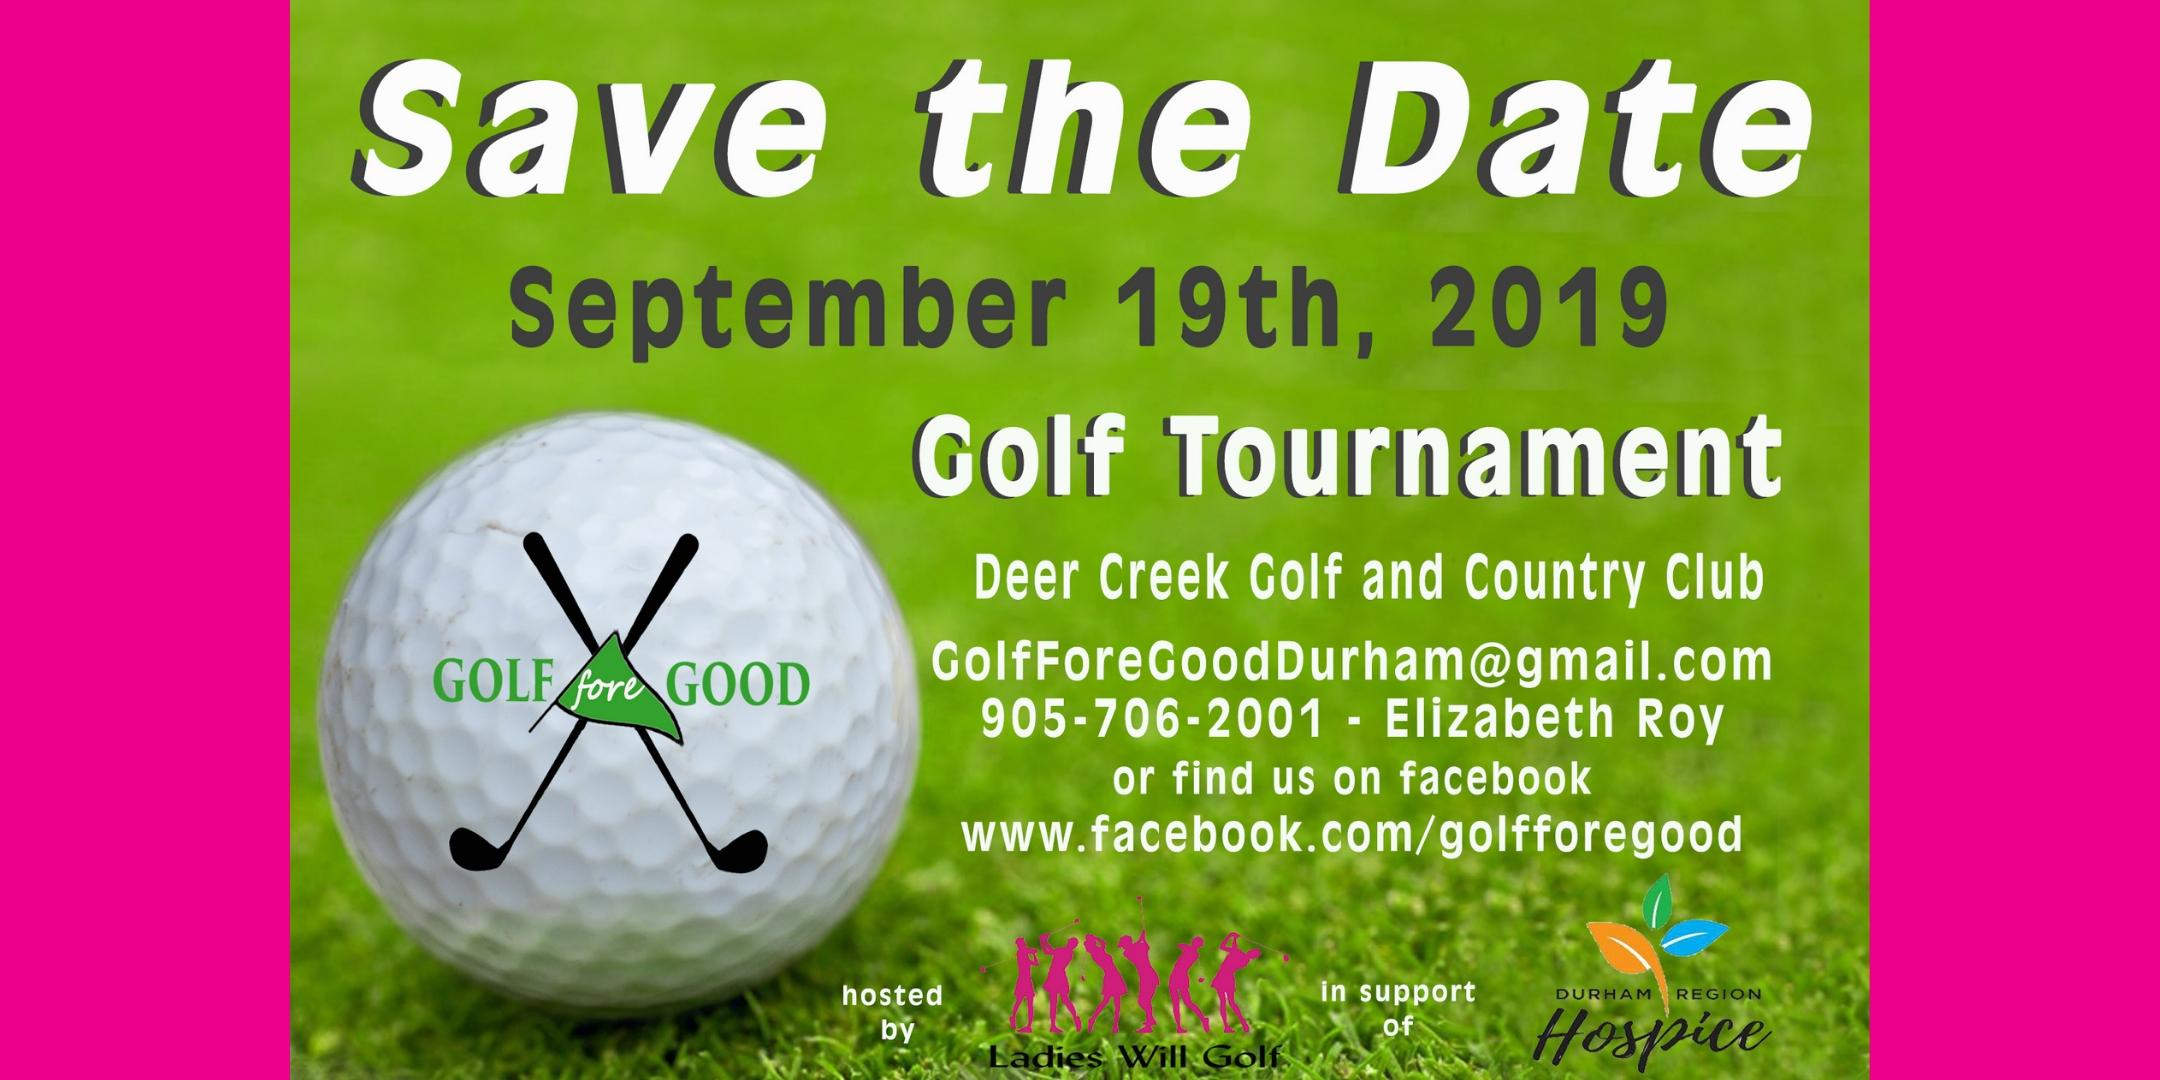 Golf Fore Good in support of Durham Region Hospice